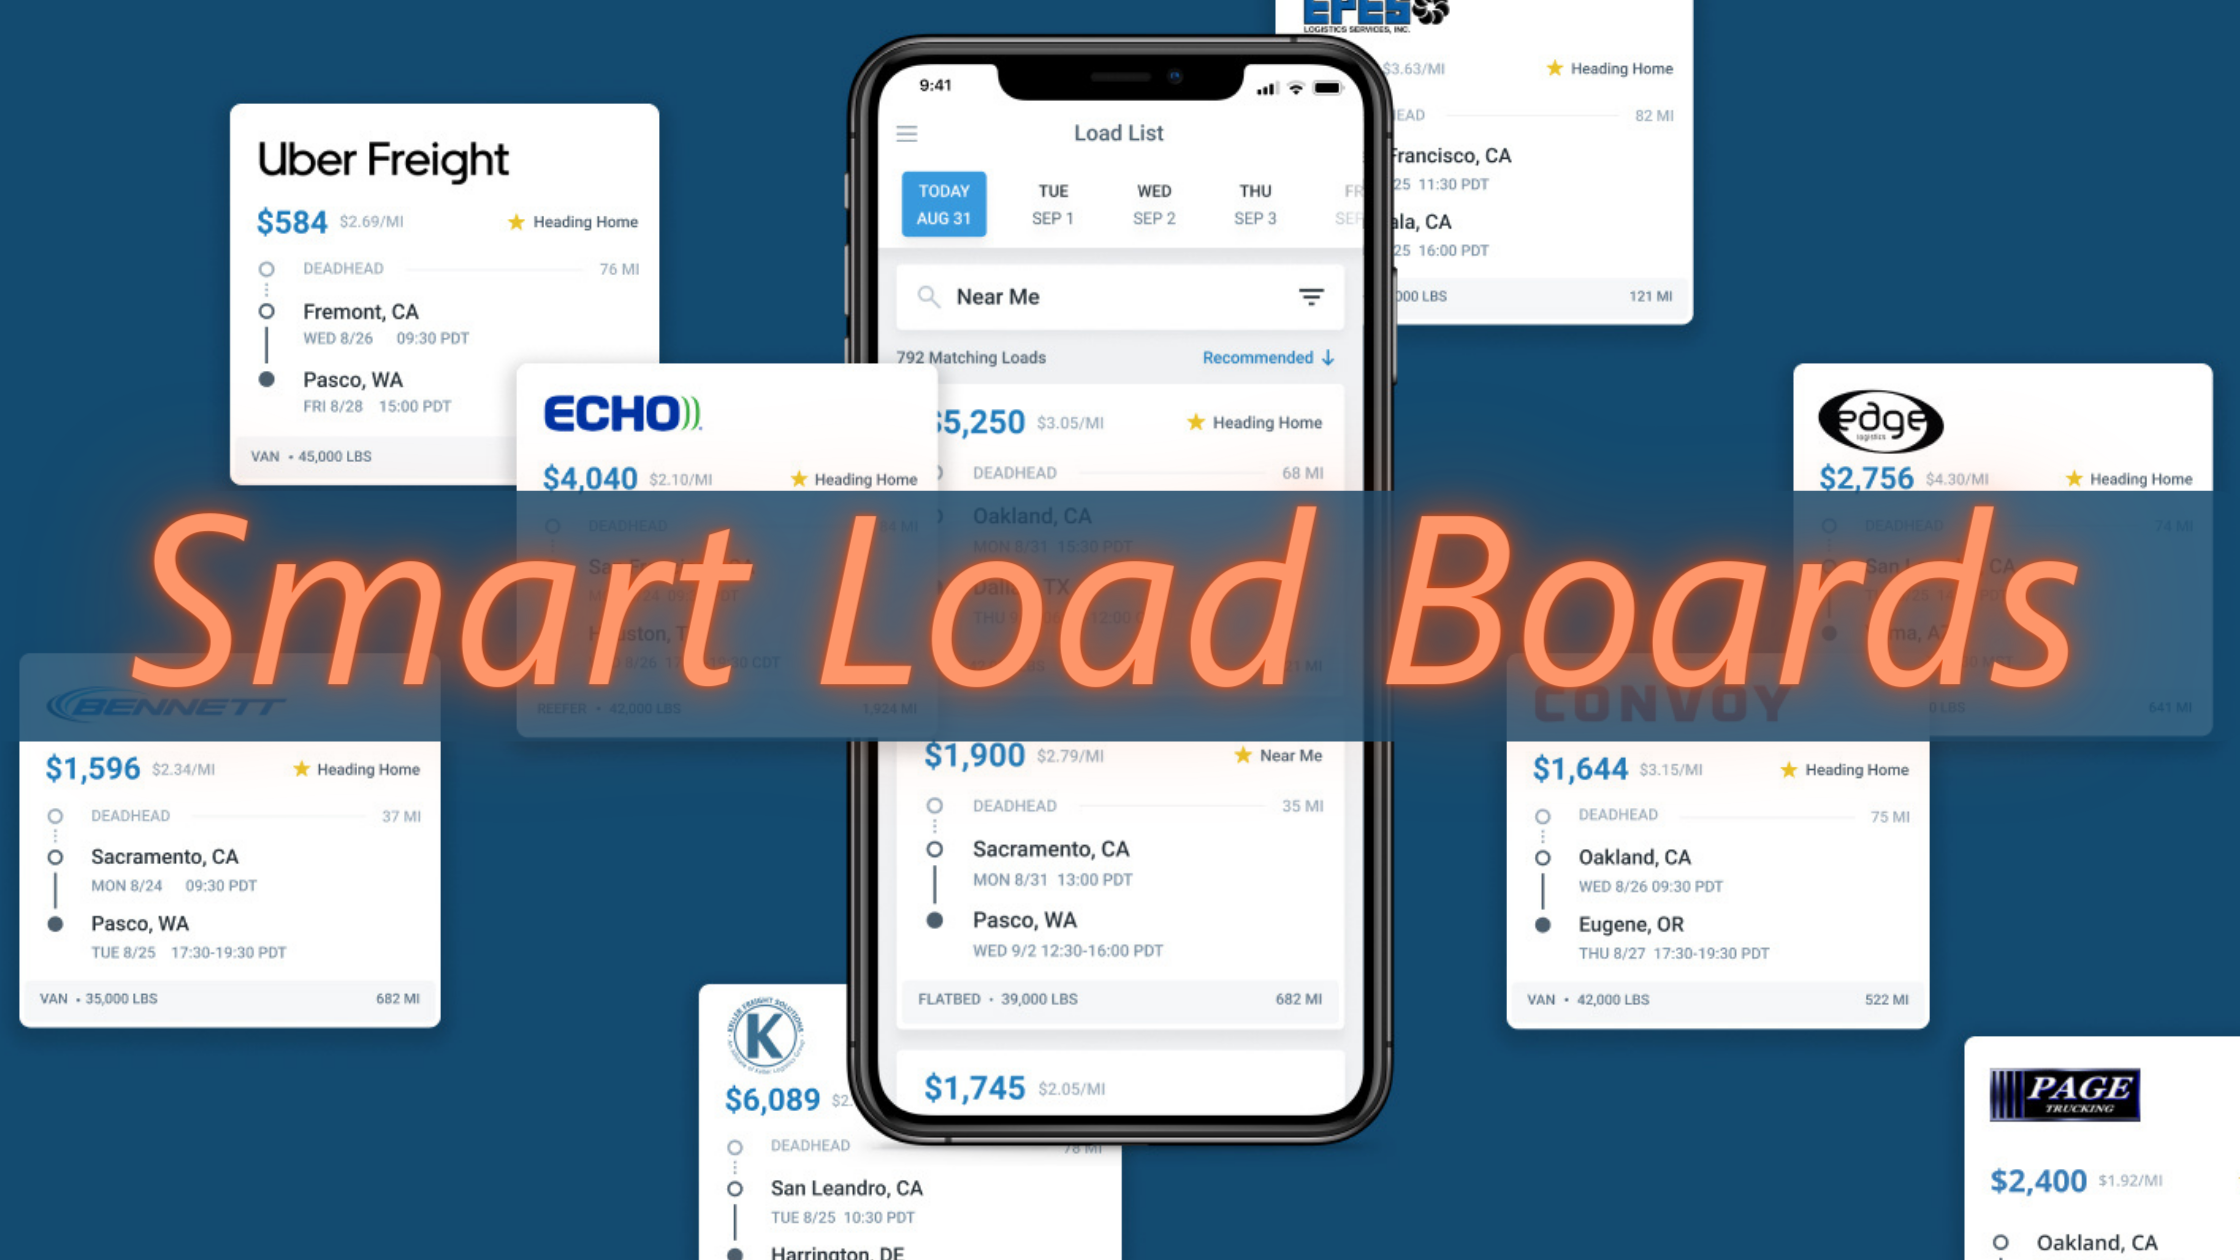 smart-load-boards-with cell-phone-image-with-fright-details-and-partner-screen-shot-clips